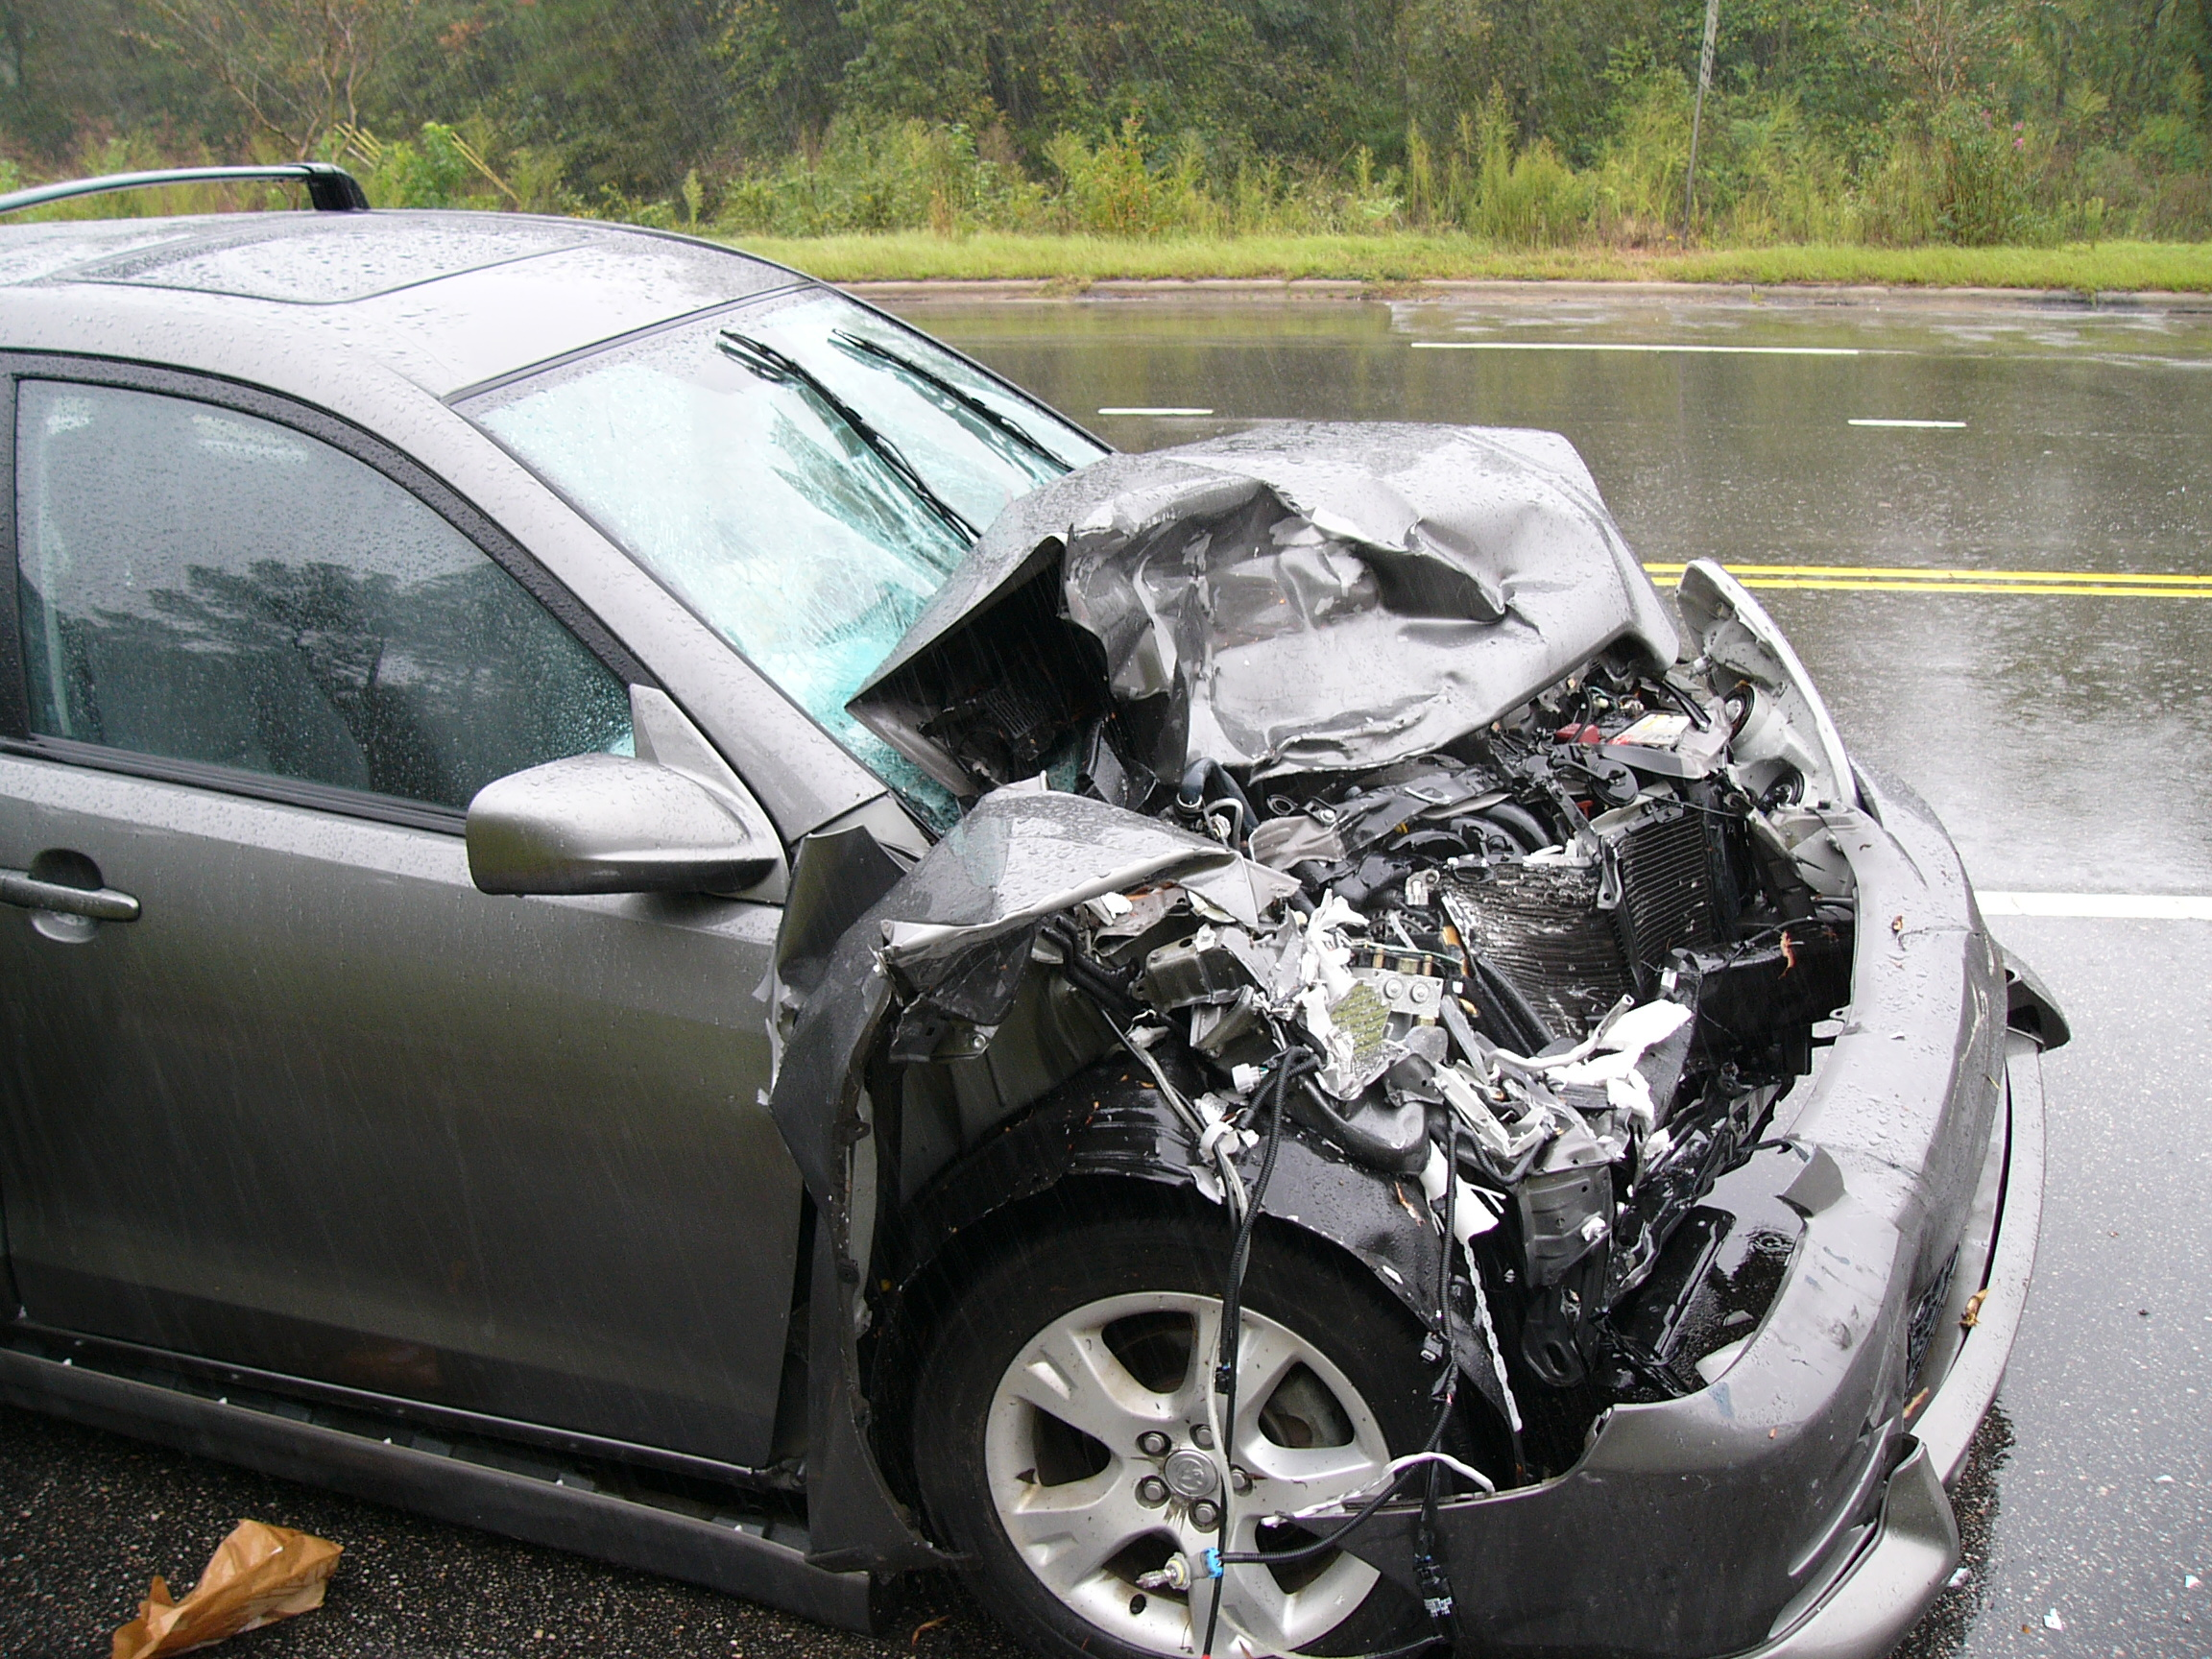 File:Car Accident.jpg - Wikimedia Commons